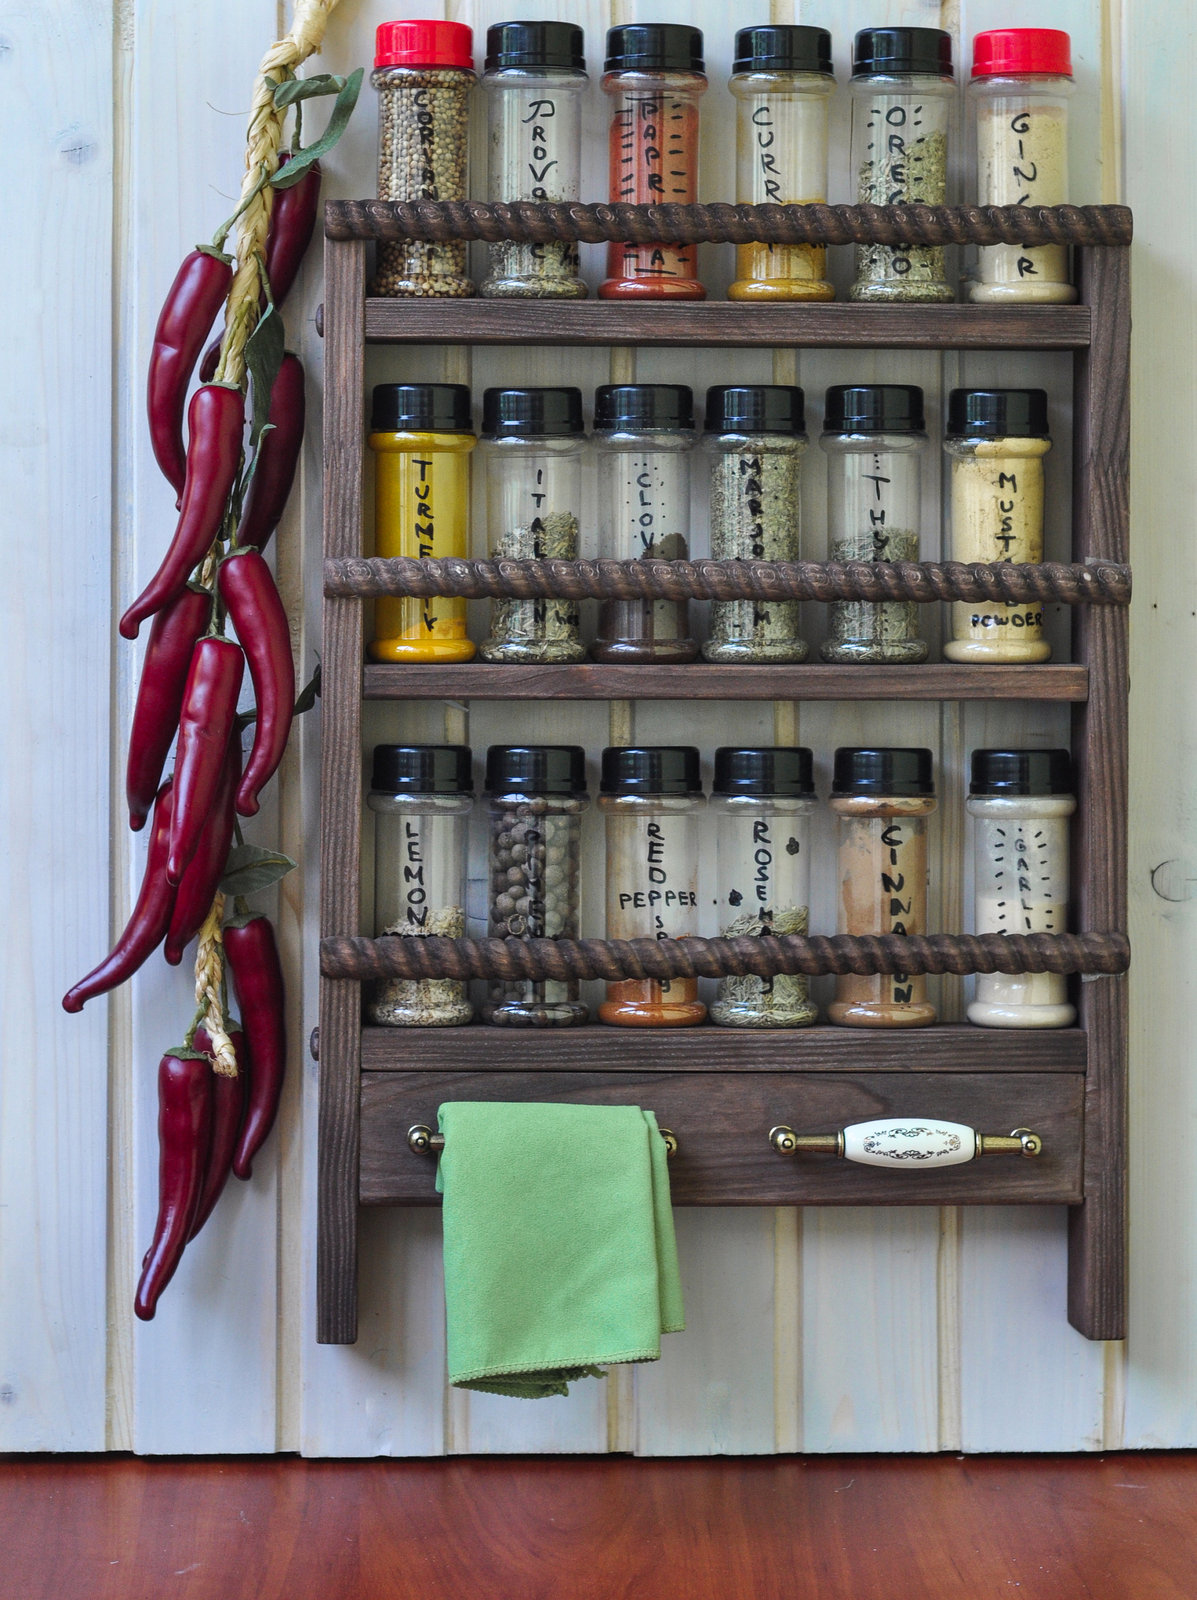 Wooden Spice Rack Wall Mount & Towel Holders - Oak Style finish, Rustic Rope Sty